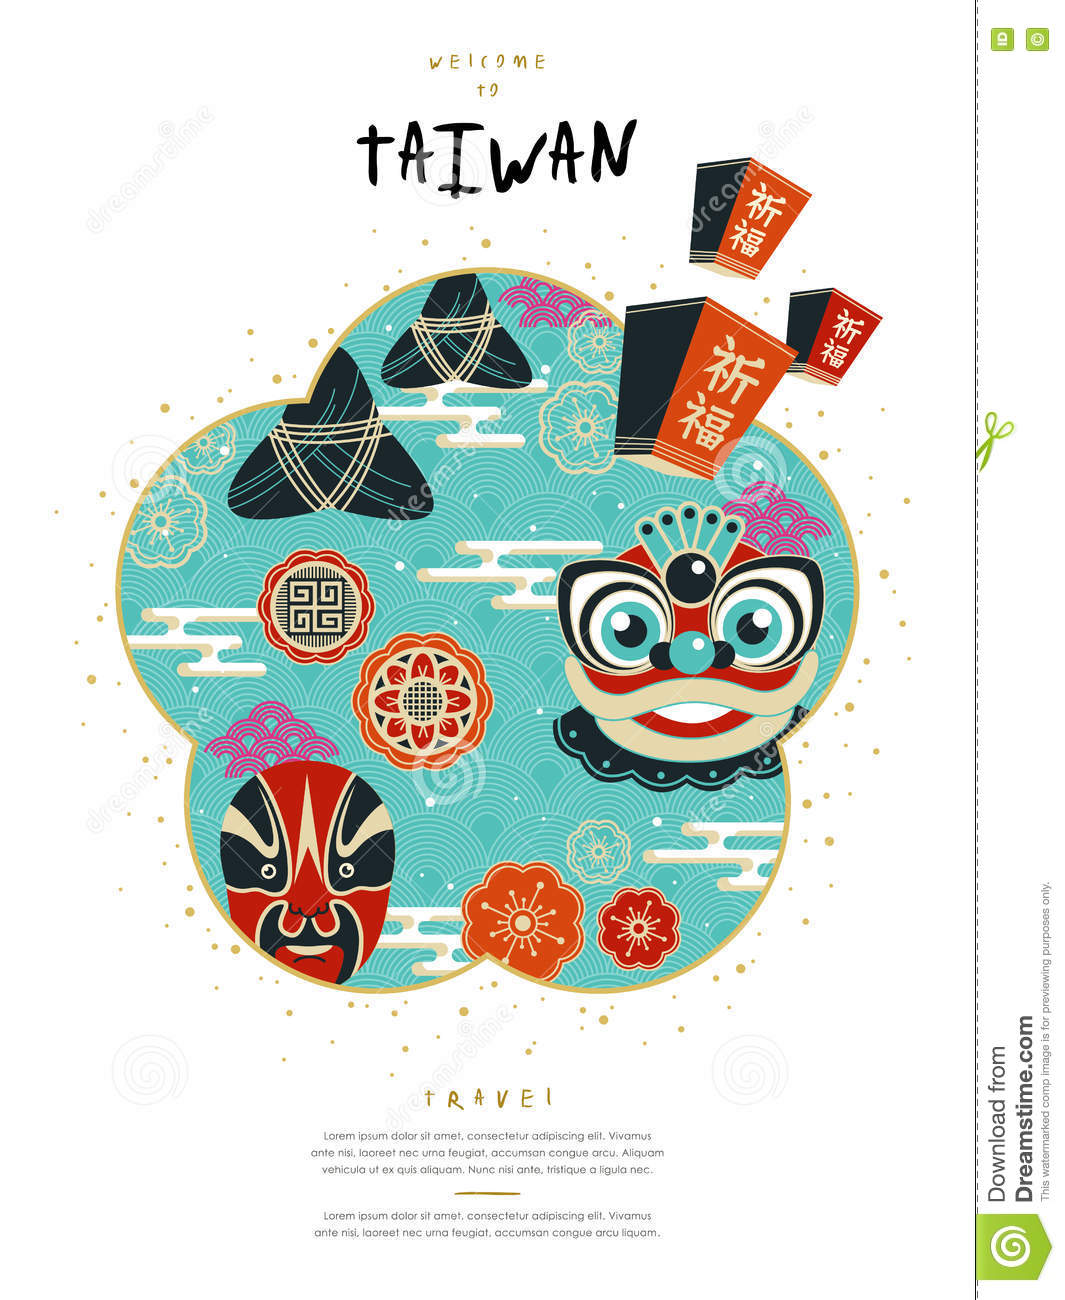 Taiwan Culture Poster Lovely Design Famous Events Symbol